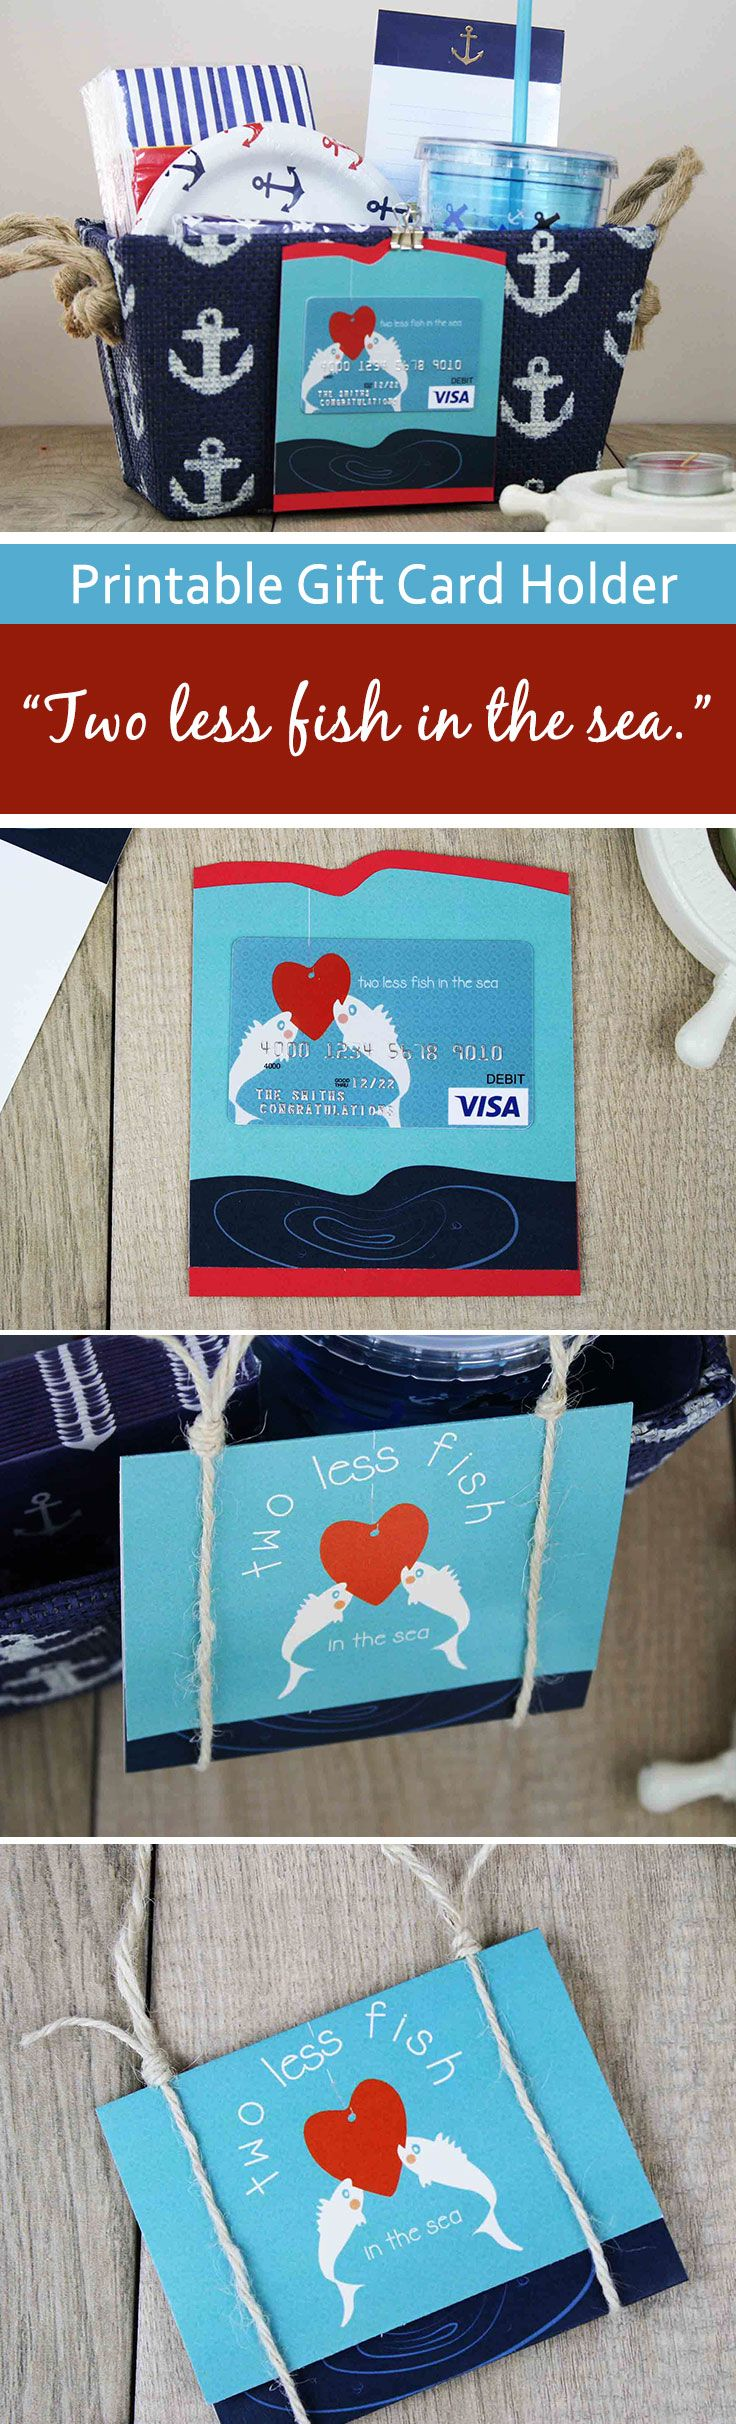 121 best Wedding and Bridal Shower Gift Ideas images – Gift Cards for Weddings